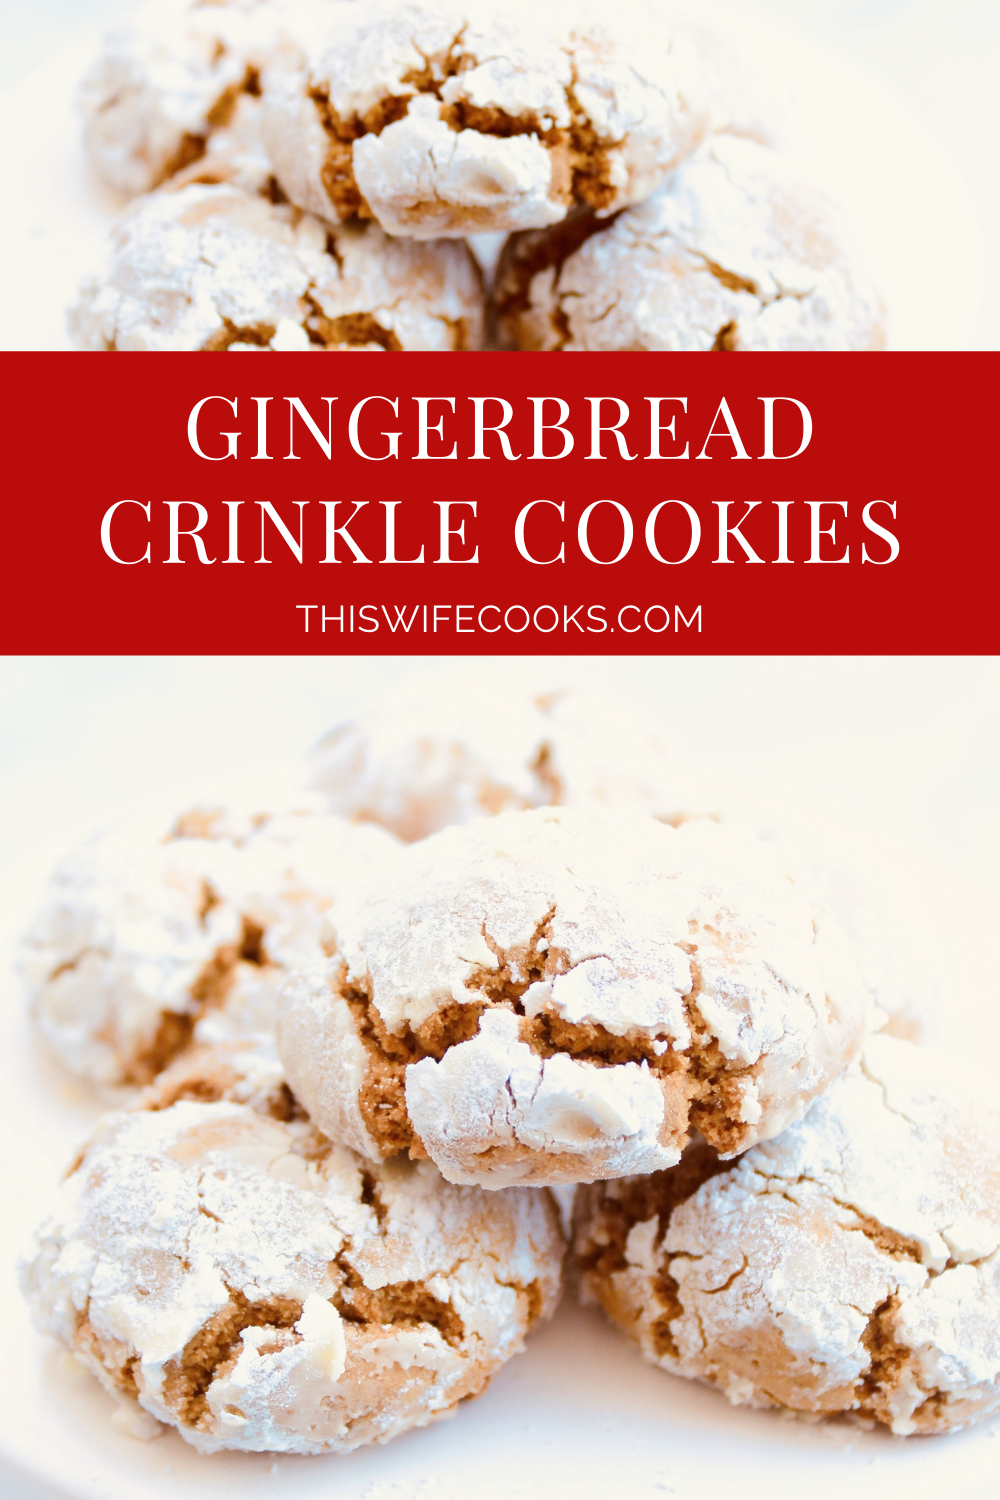 Gingerbread Crinkle Cookies ~ Santa is going to love these gingerbread cookies! They're rich with classic gingerbread flavor, pillowy soft, perfectly spiced, and taste like Christmas! via @thiswifecooks